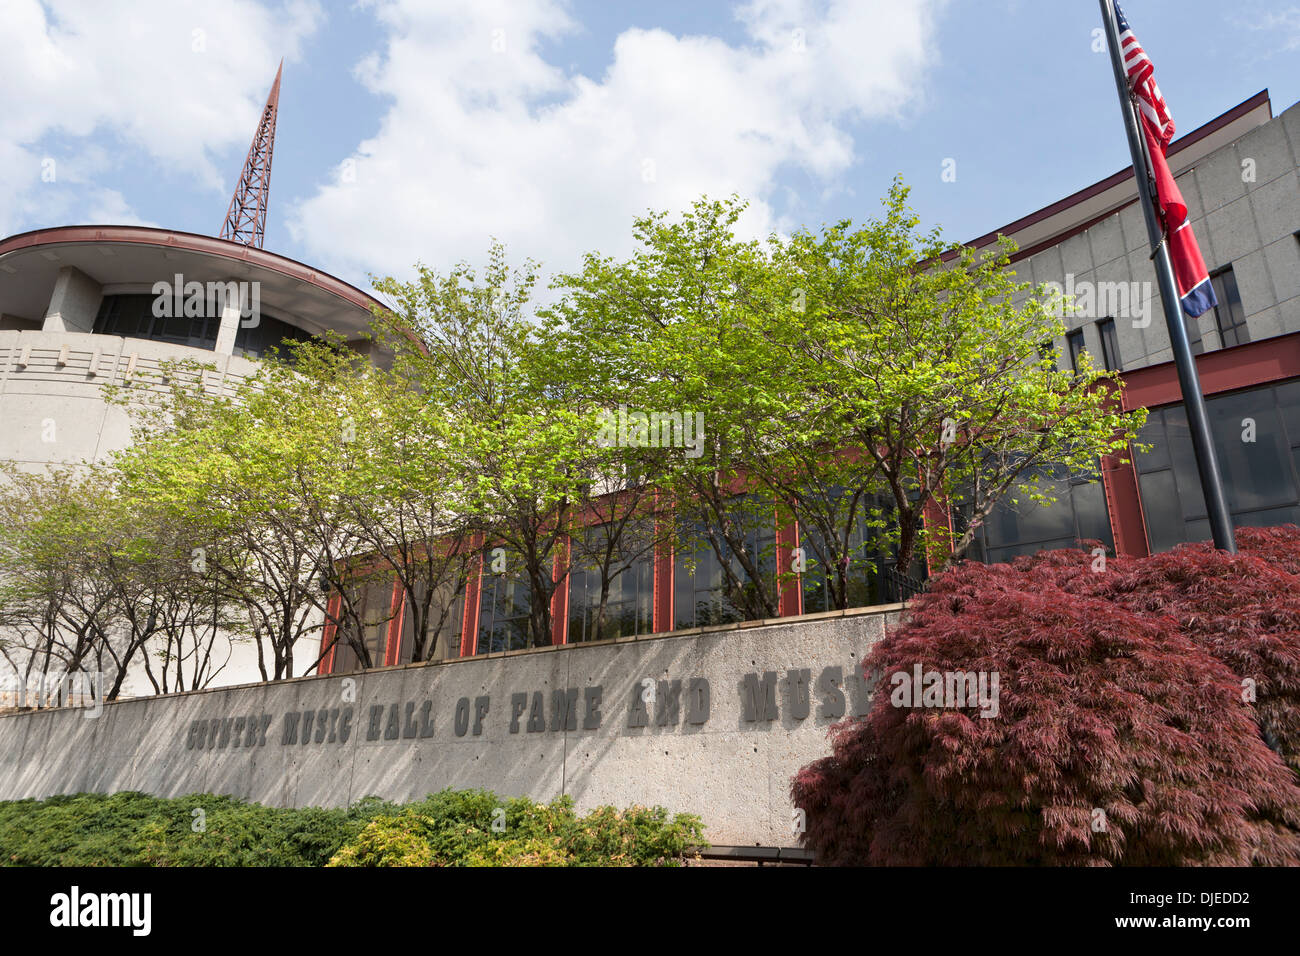 Country Music Hall of Fame exterior in Nashville, TN, USA - Stock Image